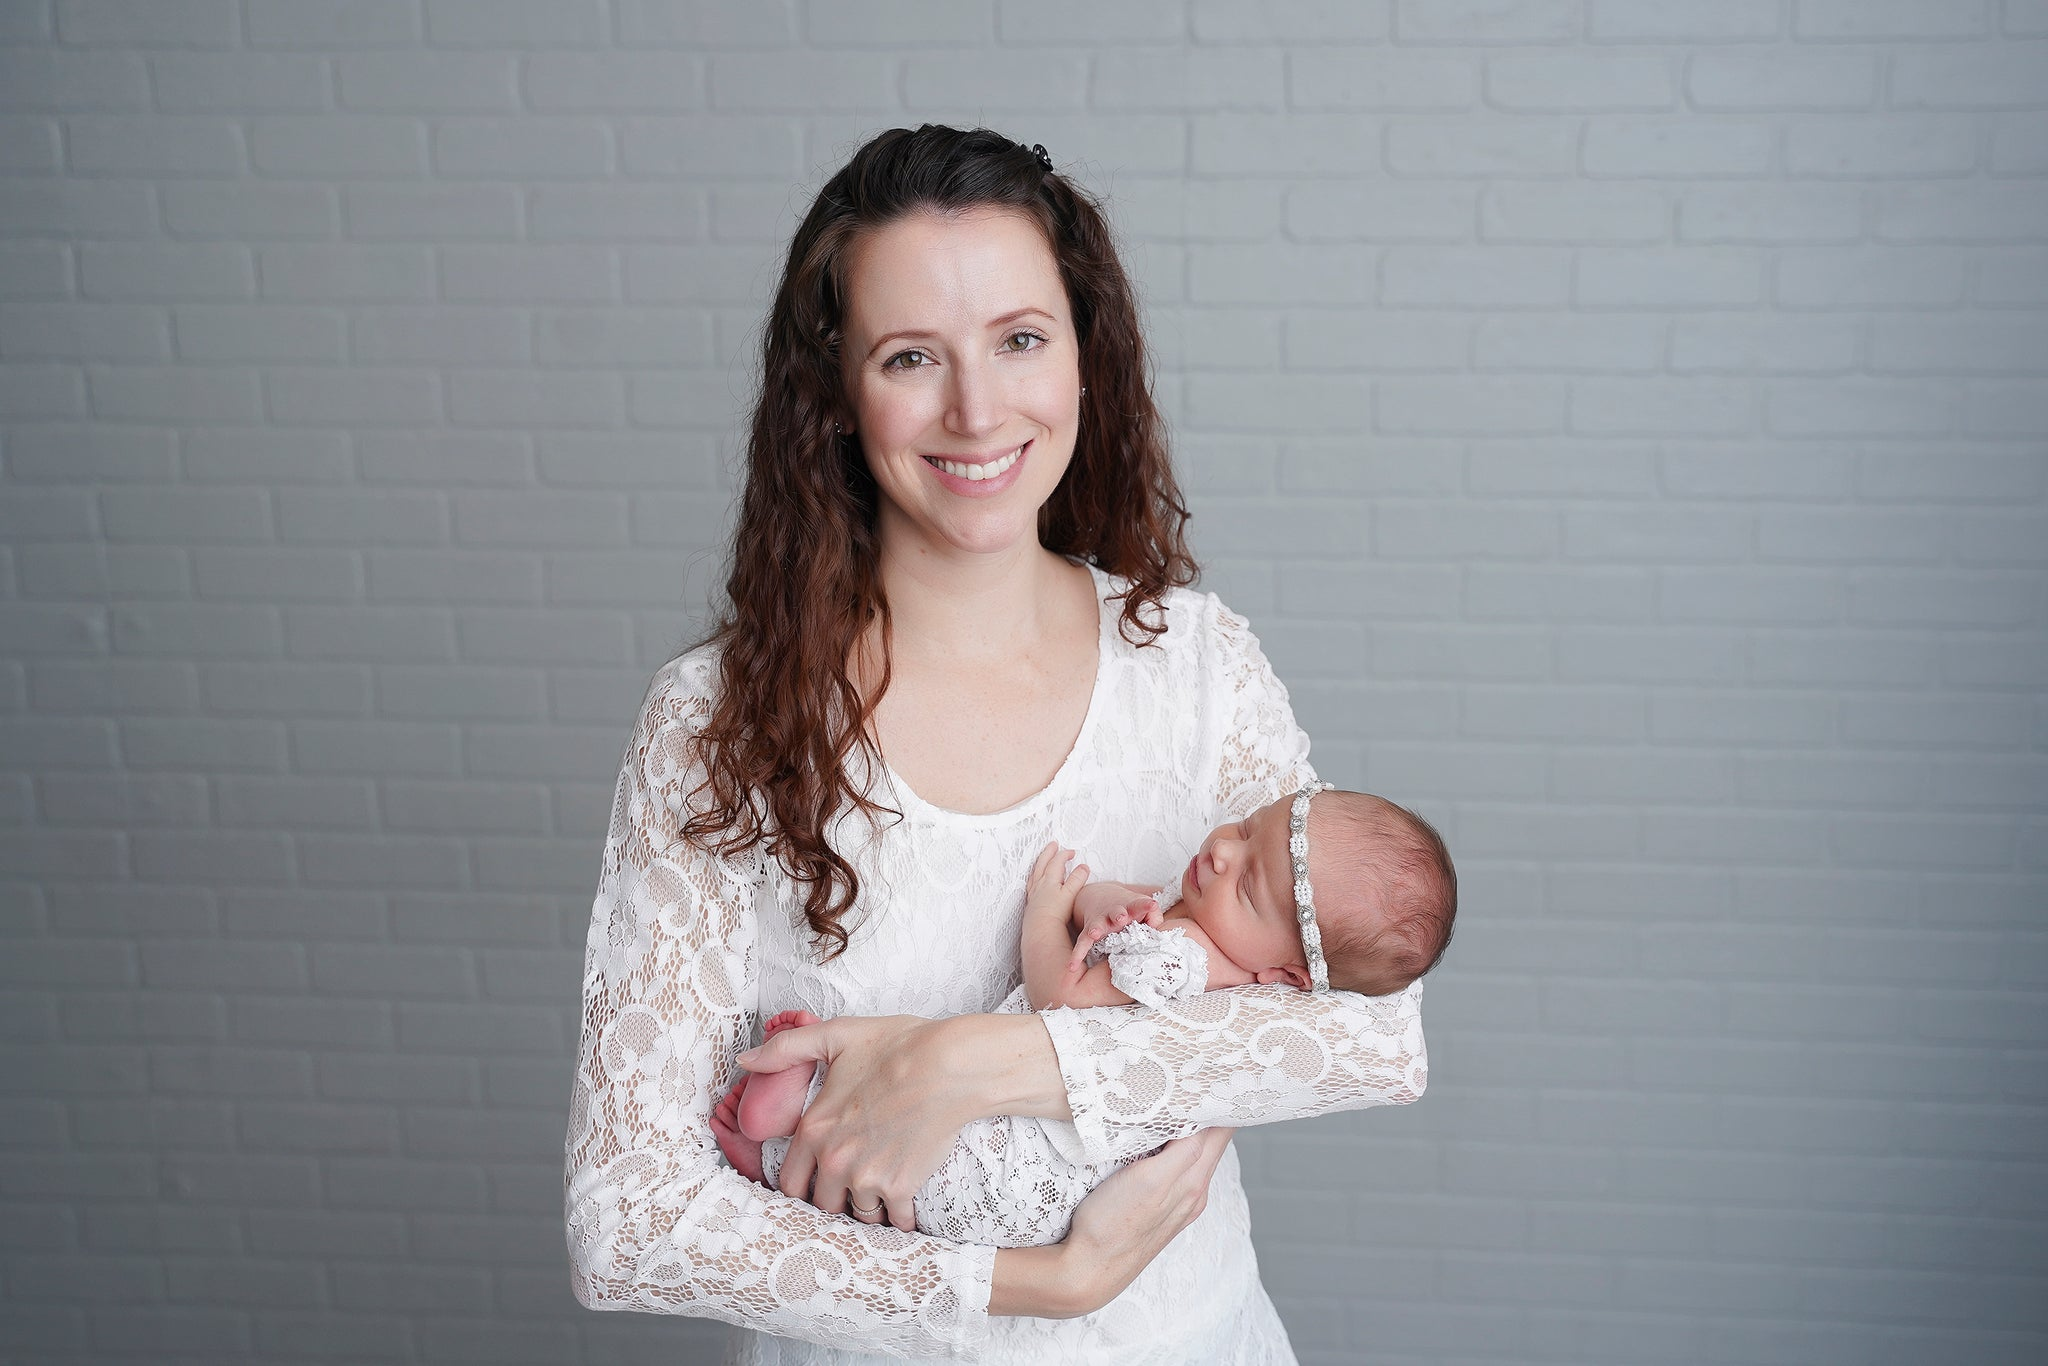 Amy with baby